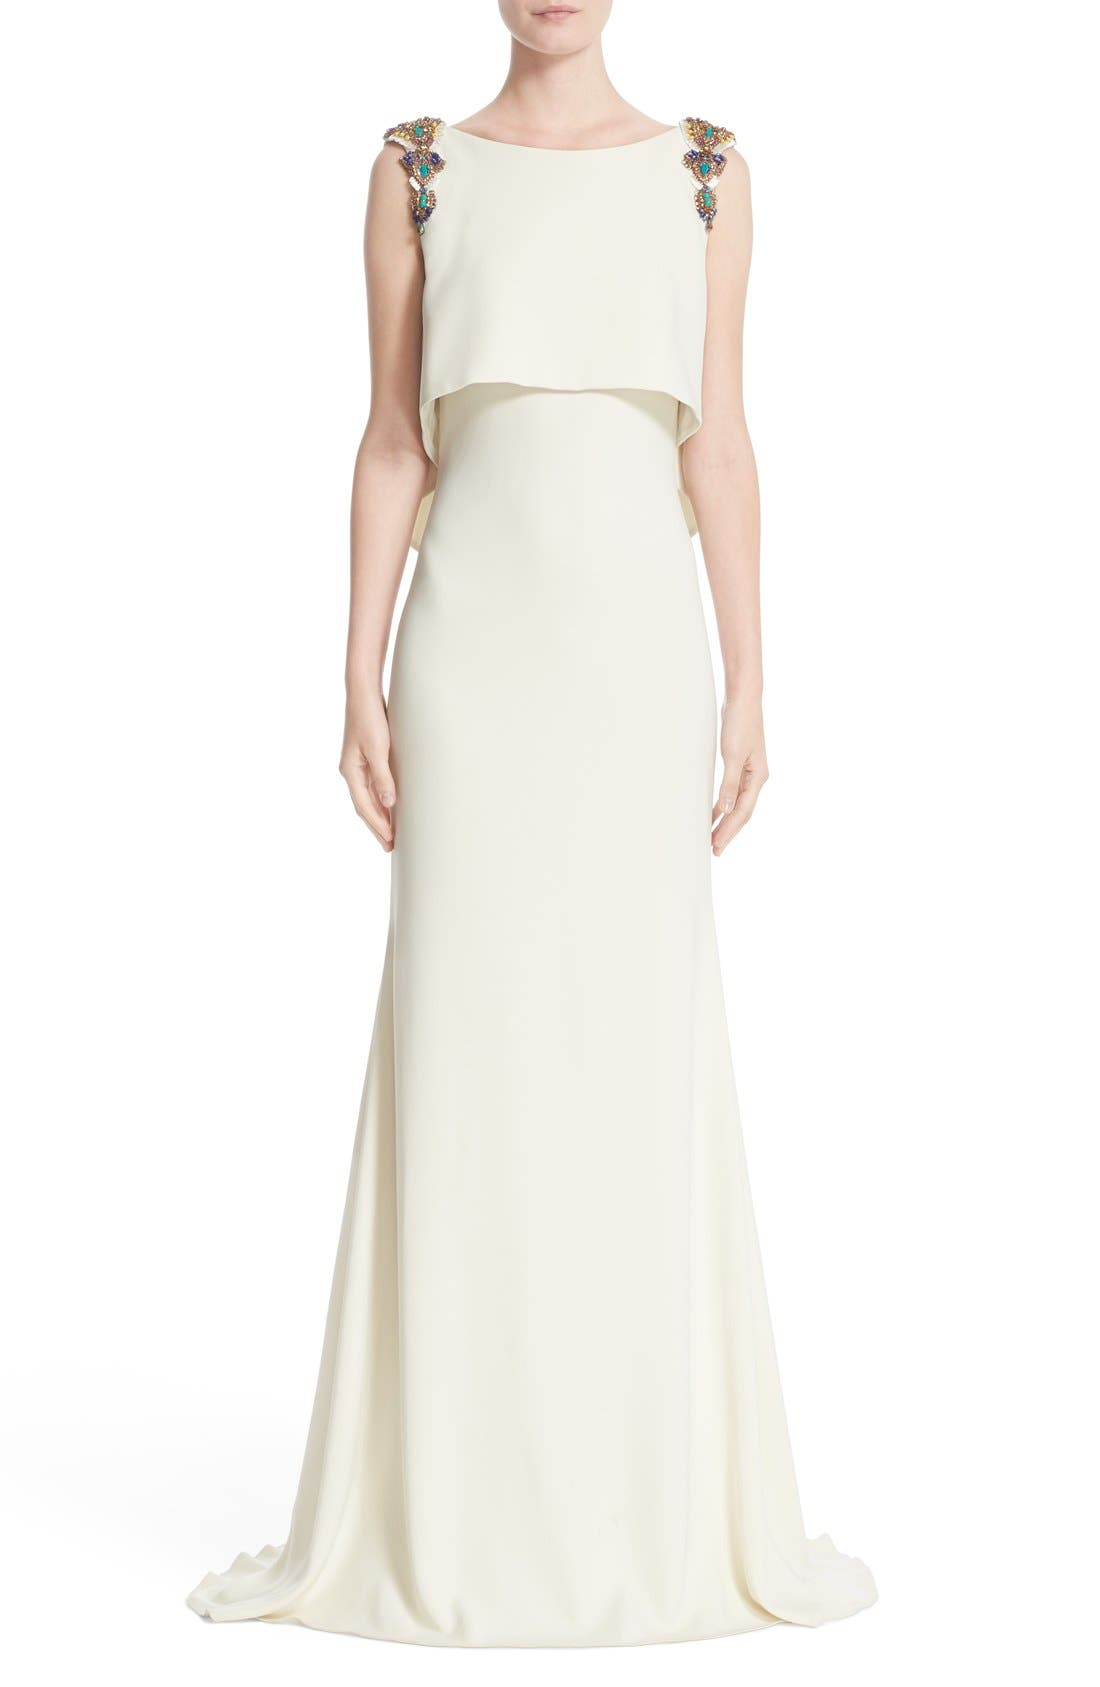 BADGLEY MISCHKA COUTURE. Badgley Mischka Embellished Shoulder